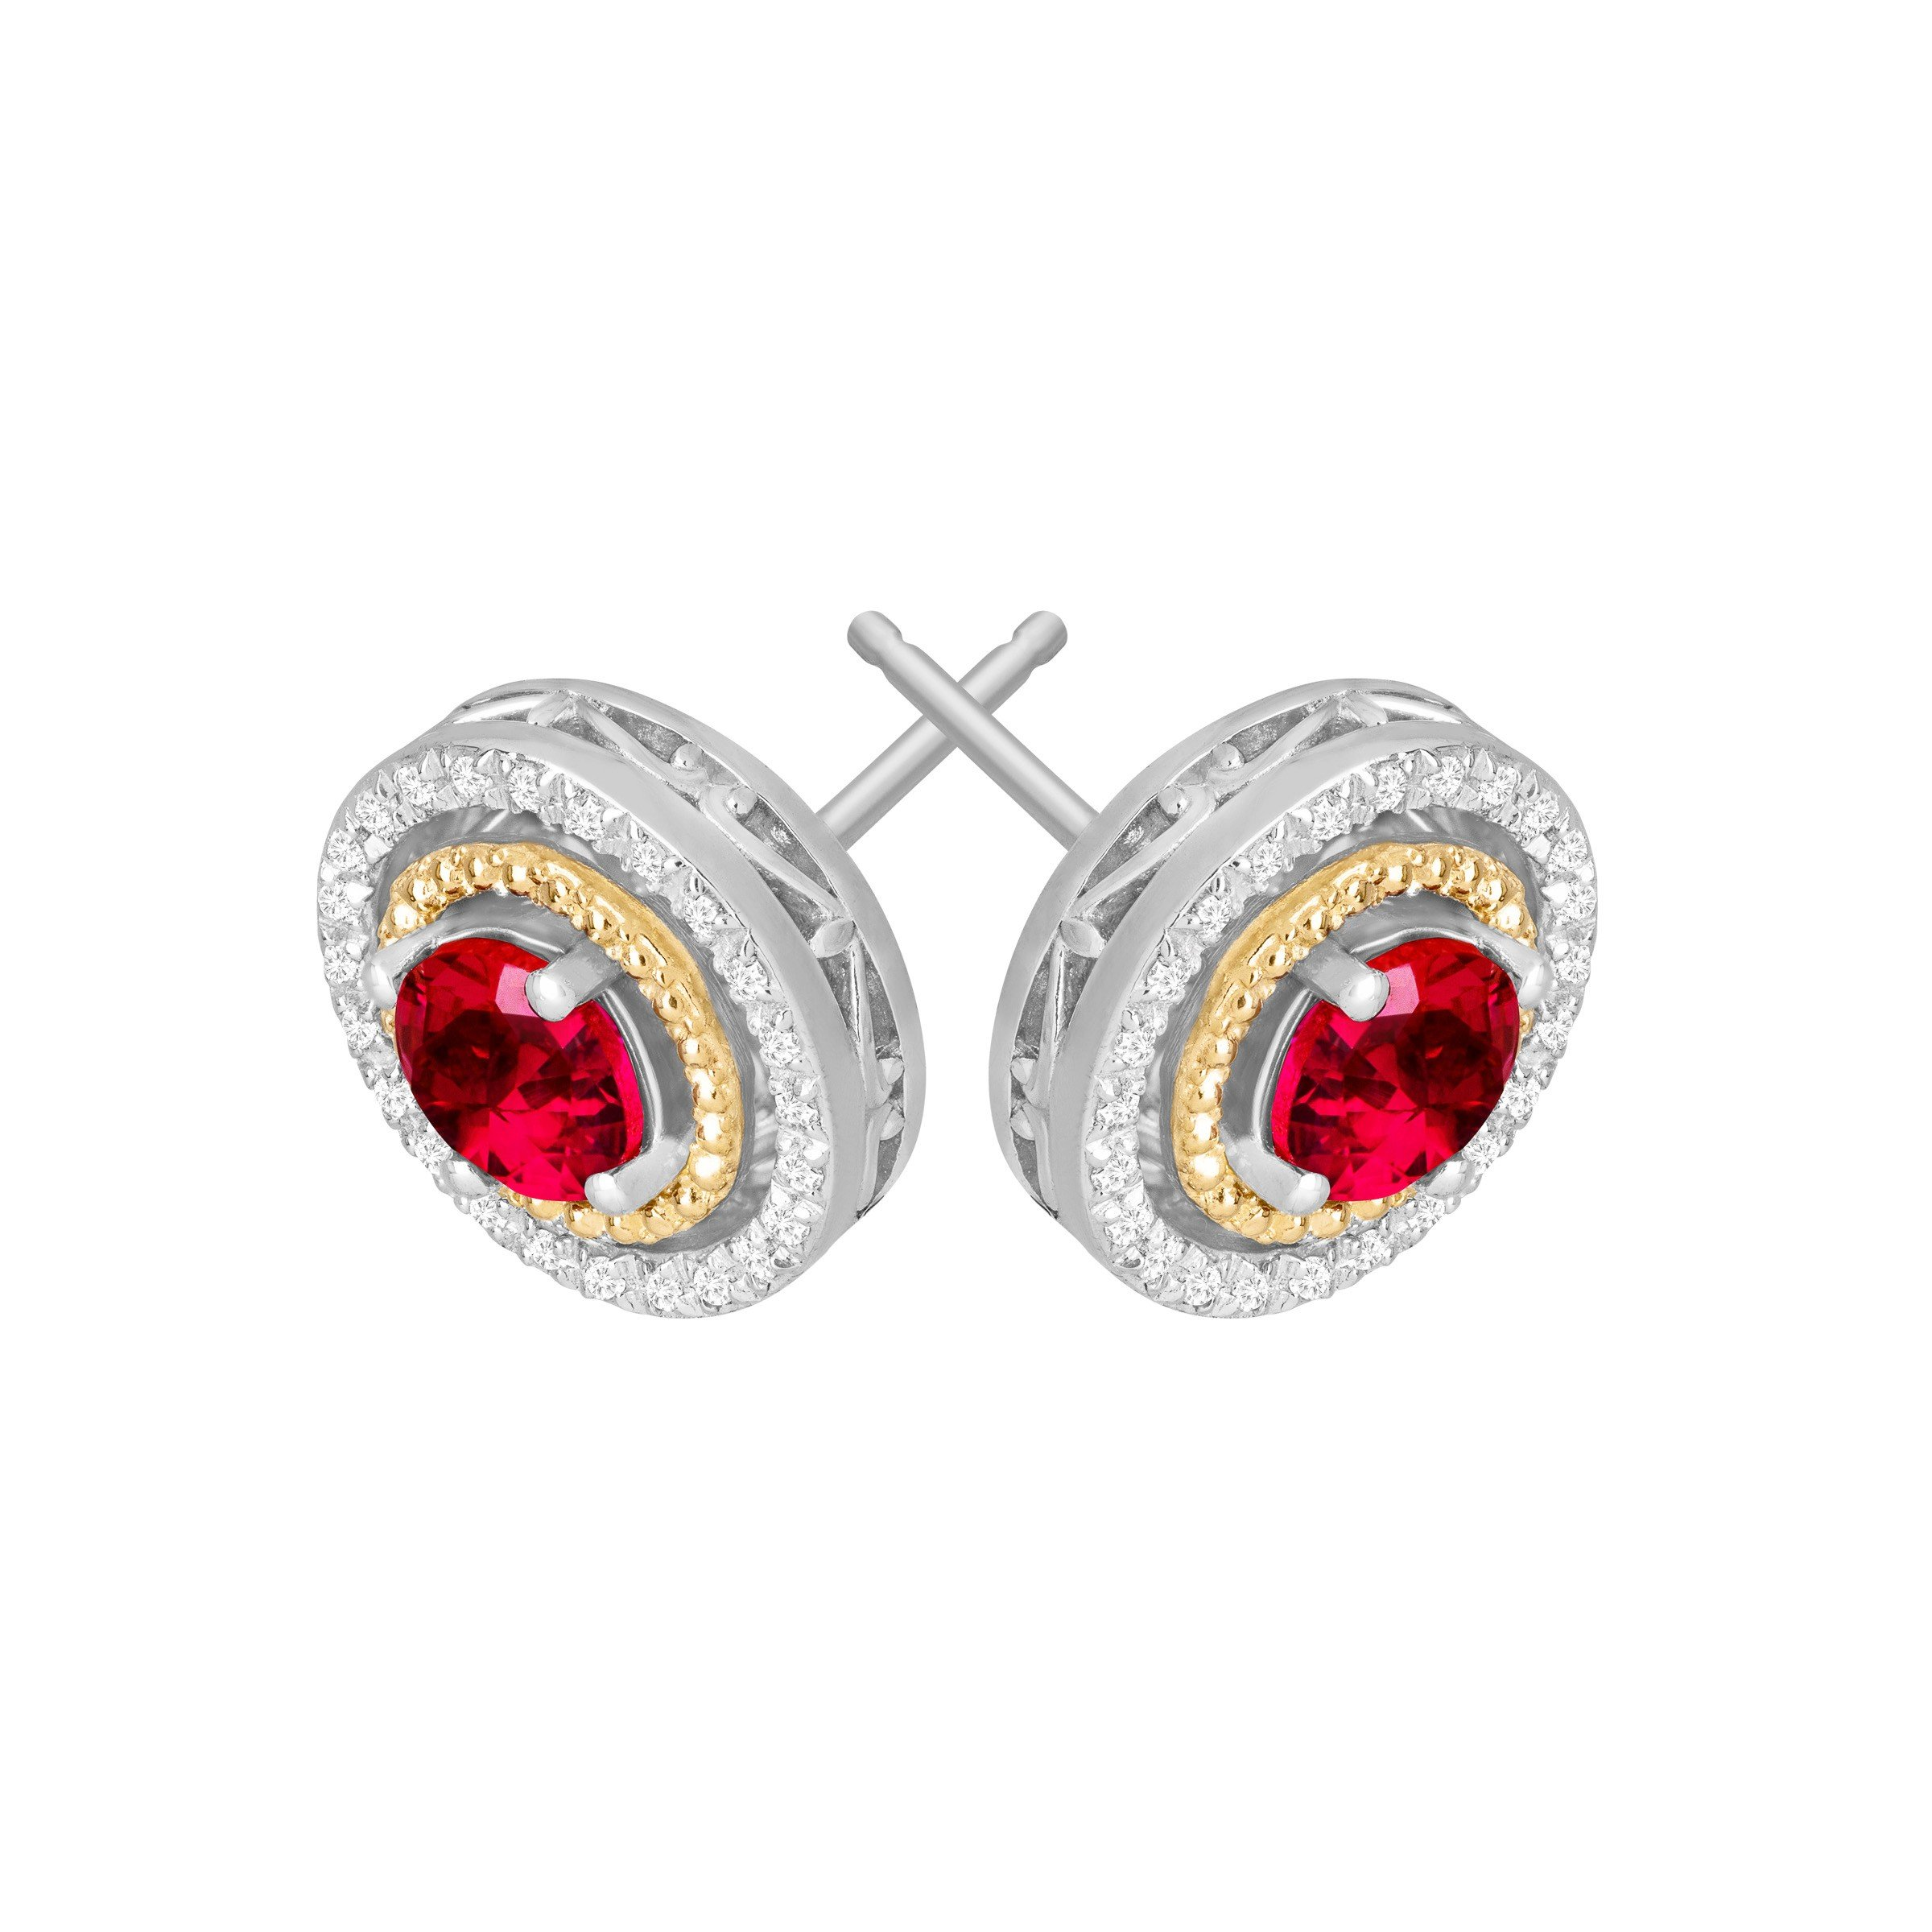 1 1/3 ct Created Ruby & 1/8 ct Diamond Stud Earrings in Sterling Silver and 14K Gold by Finecraft (Image #2)